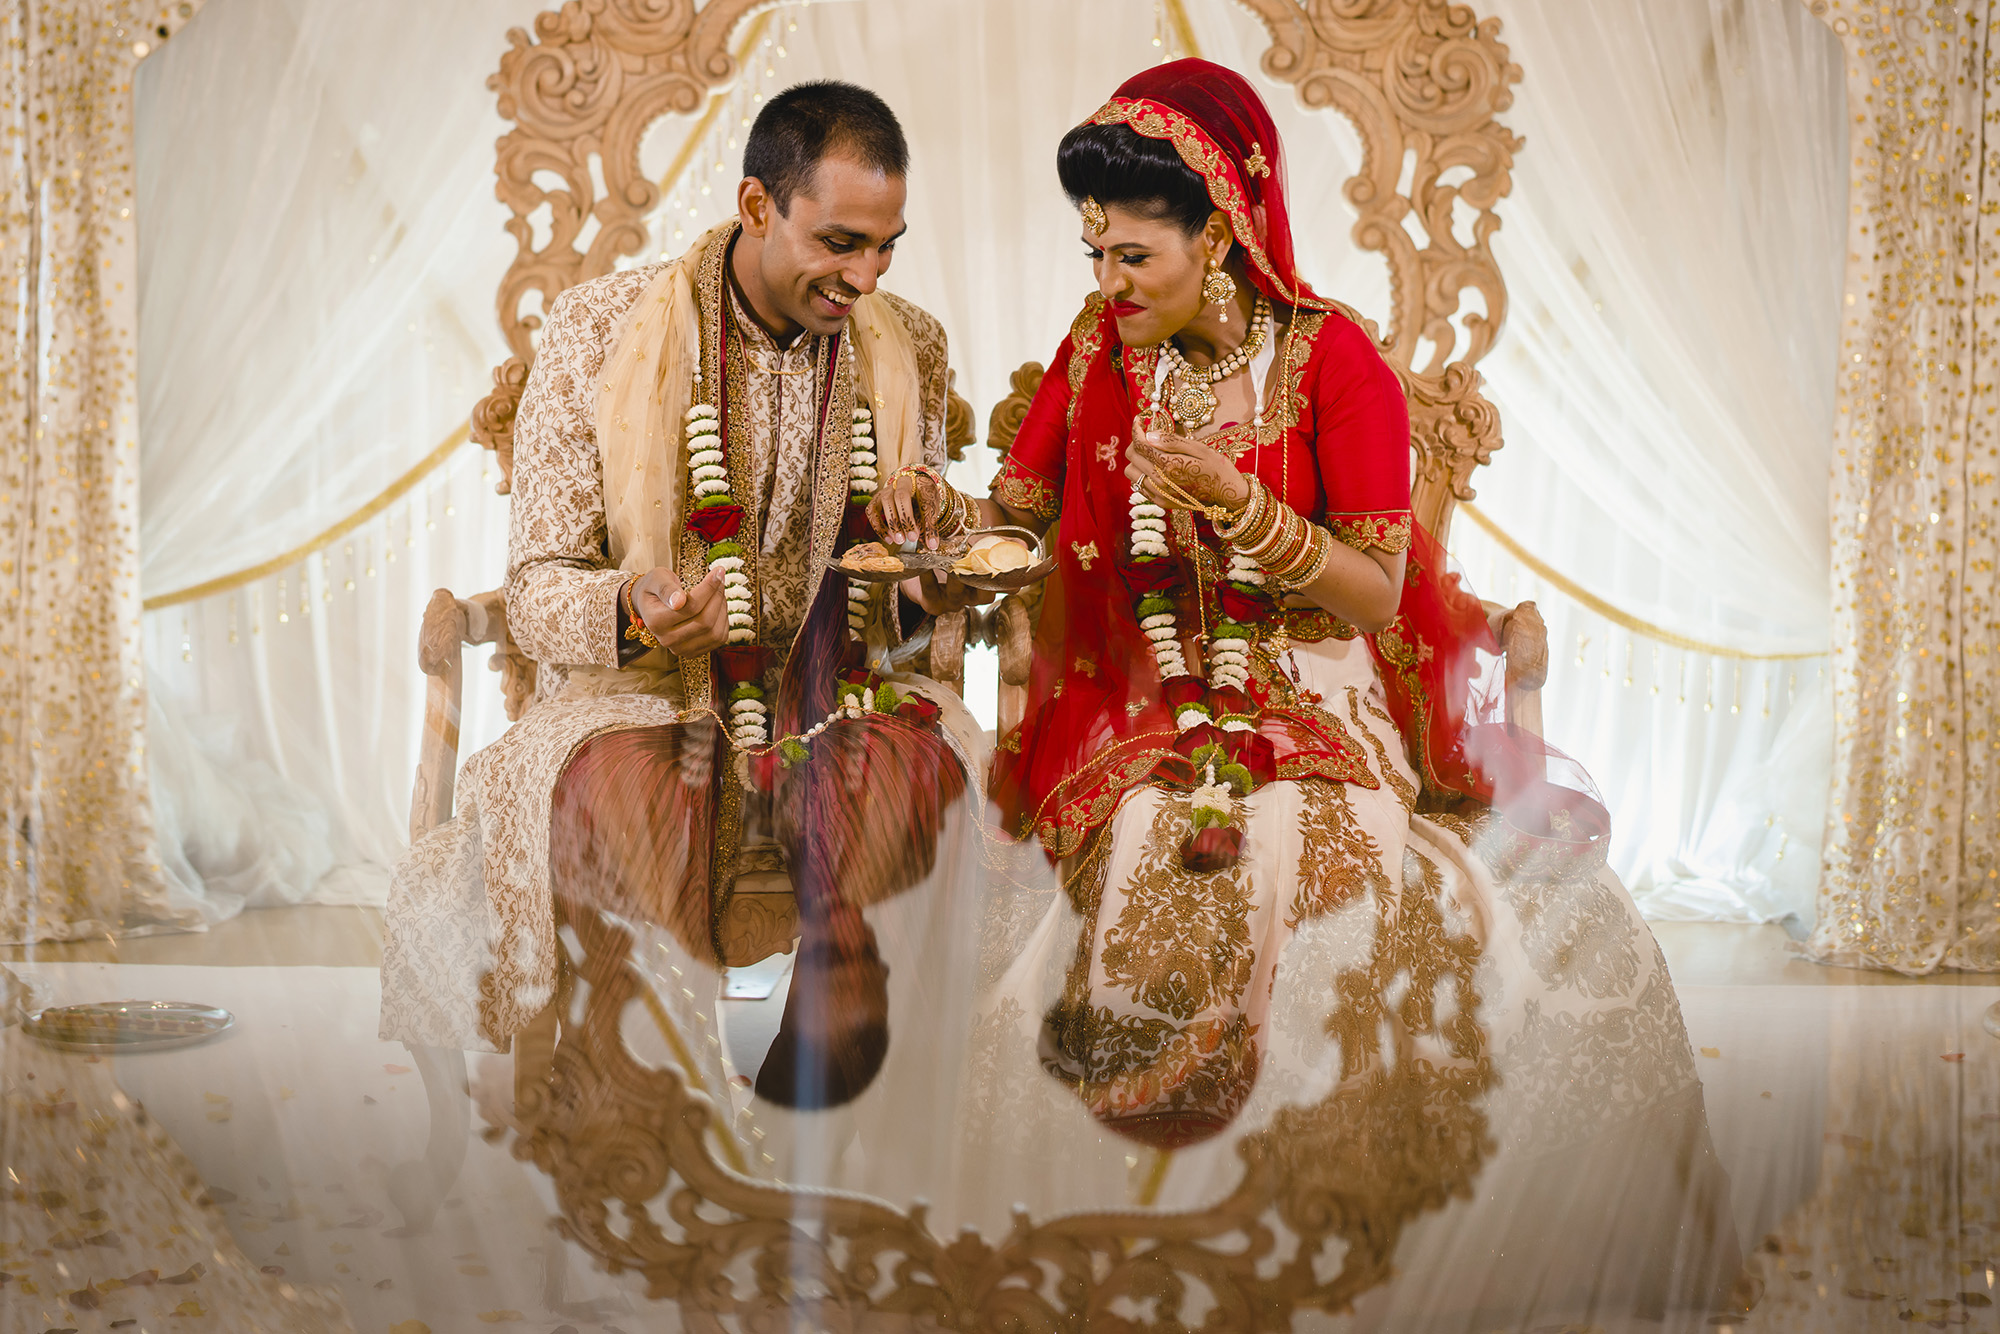 bride and groom enjoying themselves in the mandap